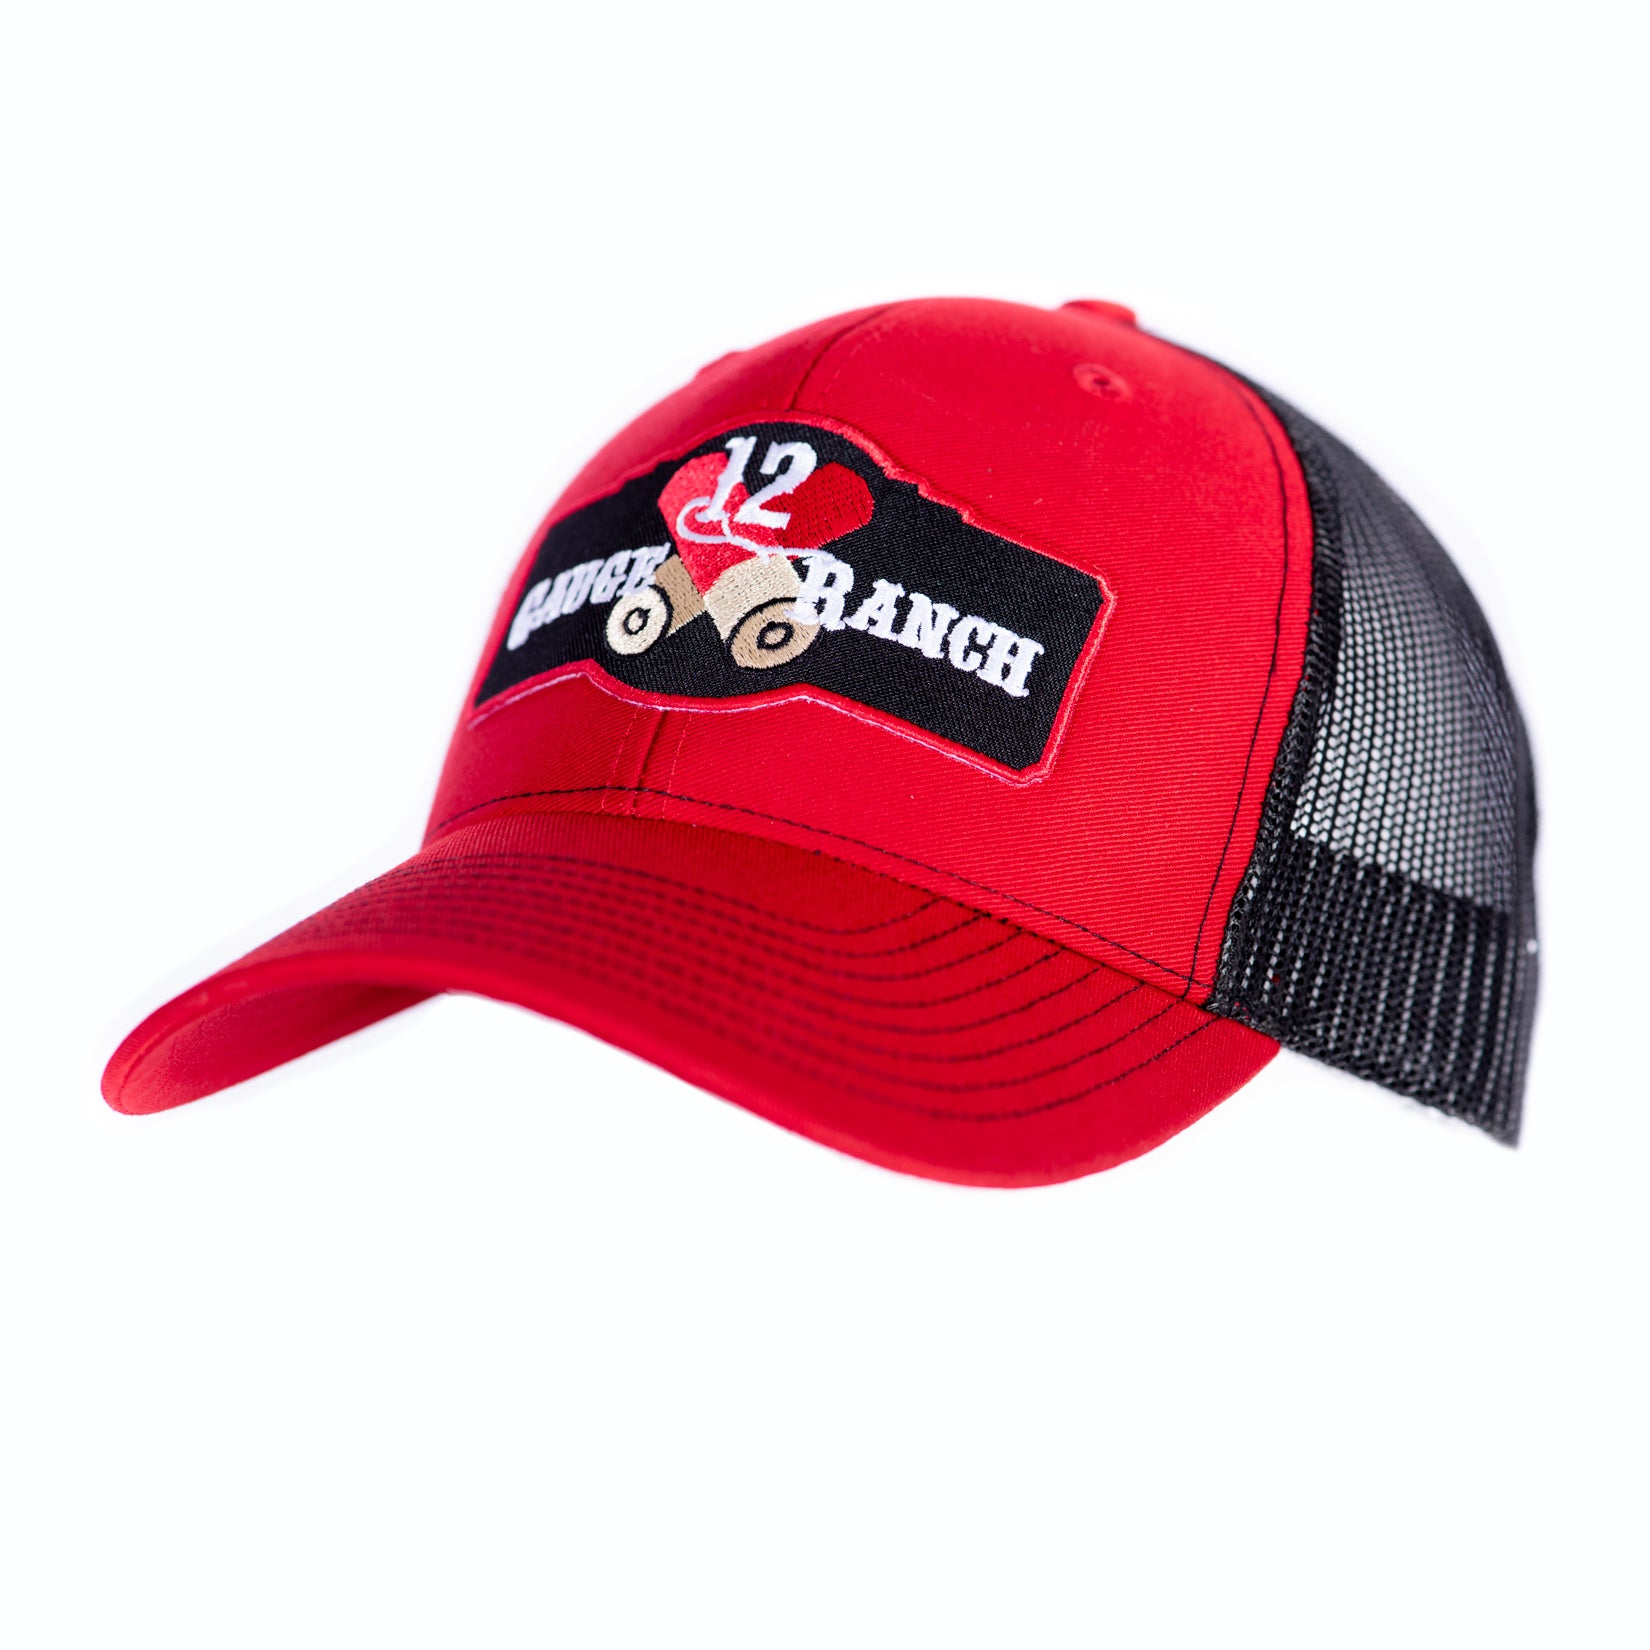 Red and Black 12 Gauge Ranch Baseball Cap (BBH112RB), Hats, 12 Gauge Ranch, 12 Gauge Ranch Ranch  12 Gauge Ranch